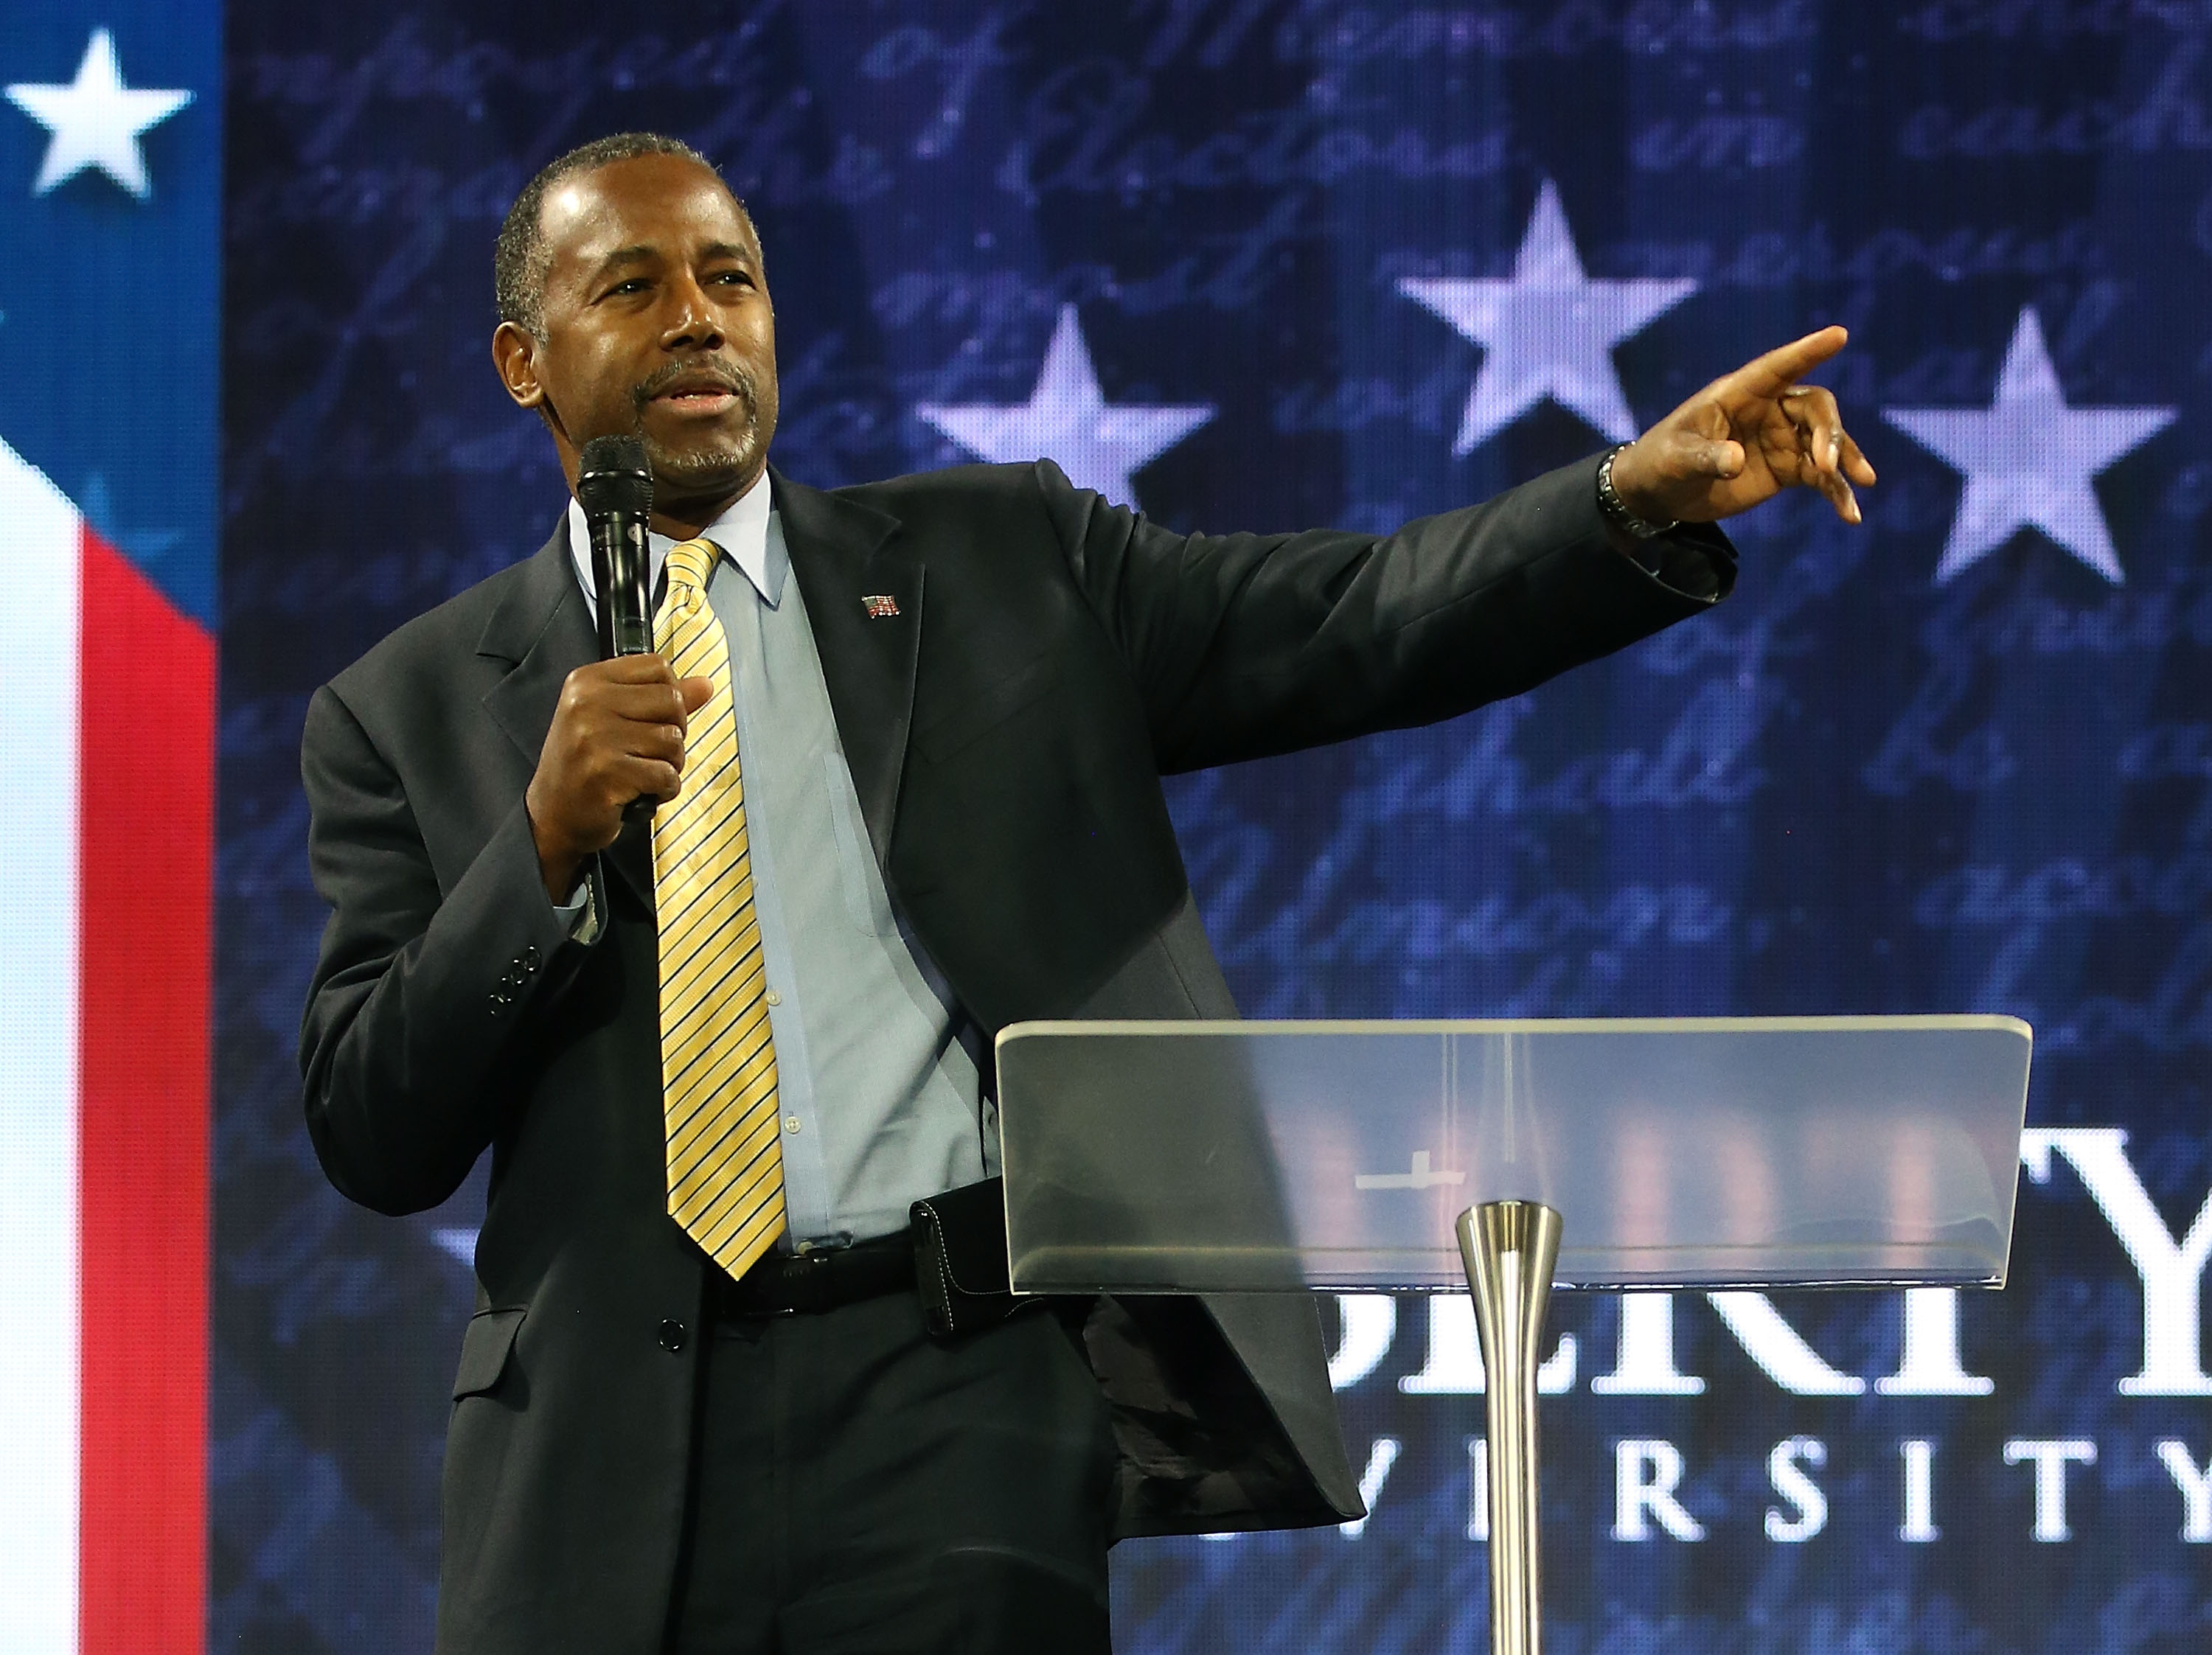 U.S. Republican President candidate Dr. Ben Carson speaks at Liberty University, on November 11, 2015 in Lynchburg, Virginia.